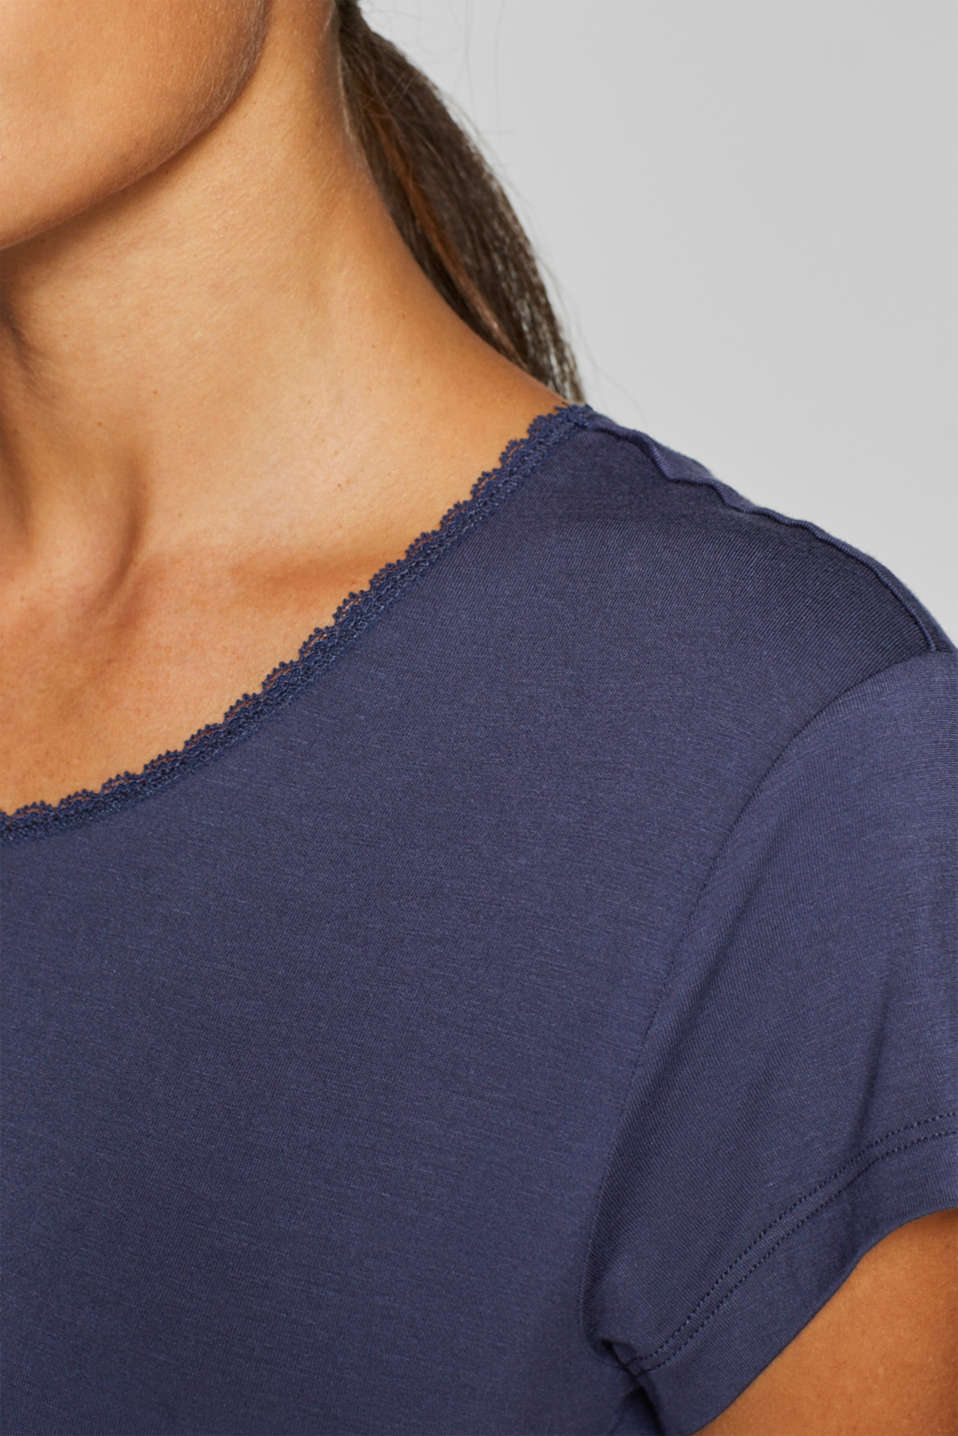 Stretch jersey top with a lace-trimmed neckline, NAVY, detail image number 2